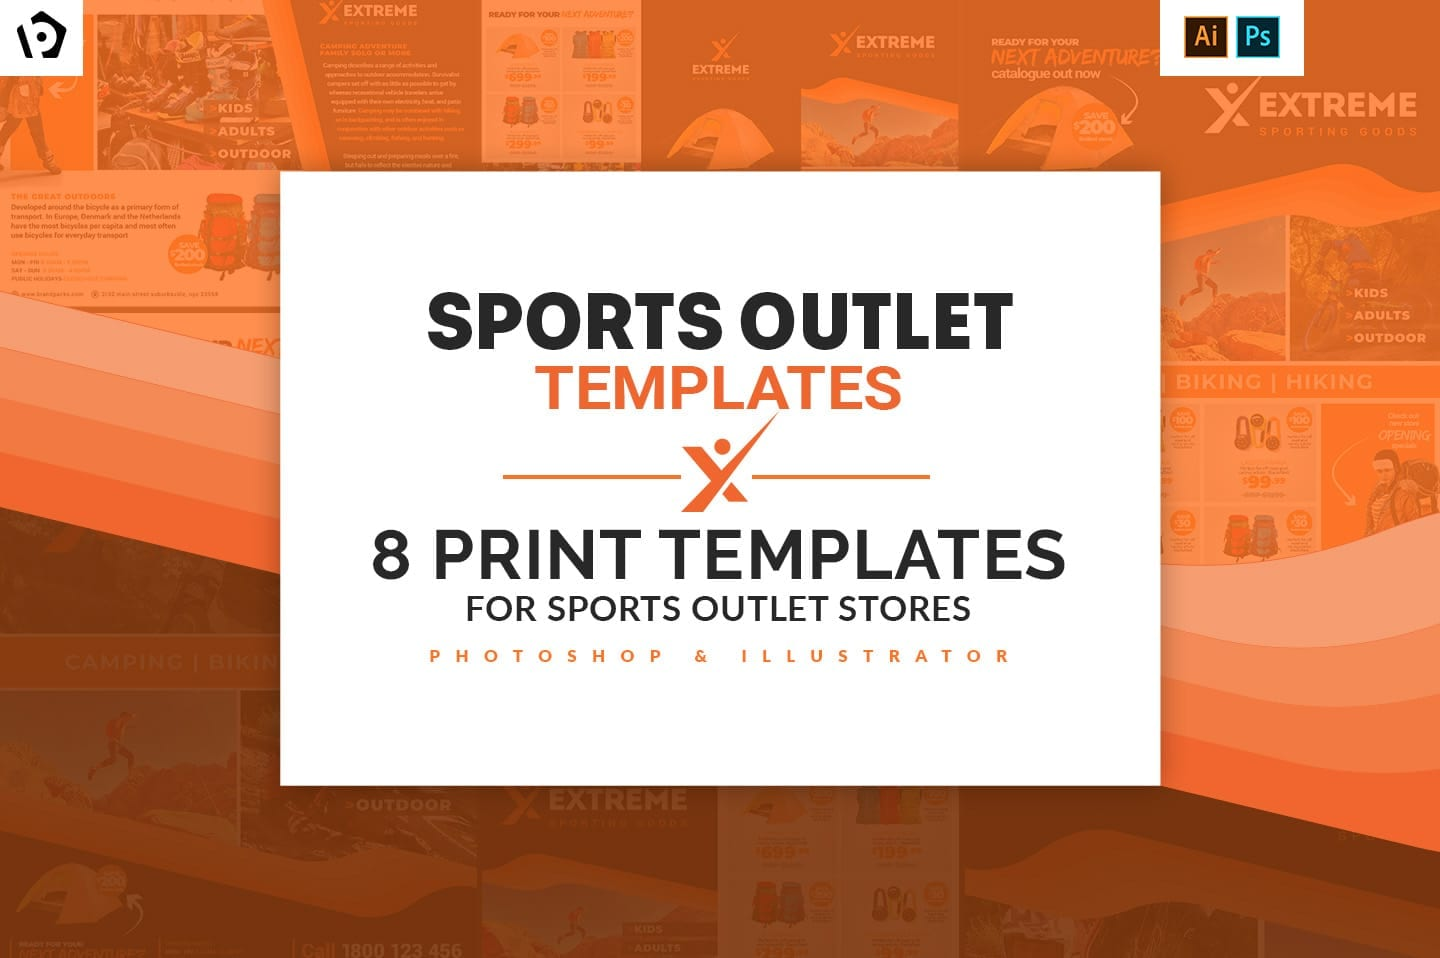 Sports Outlet Templates Pack